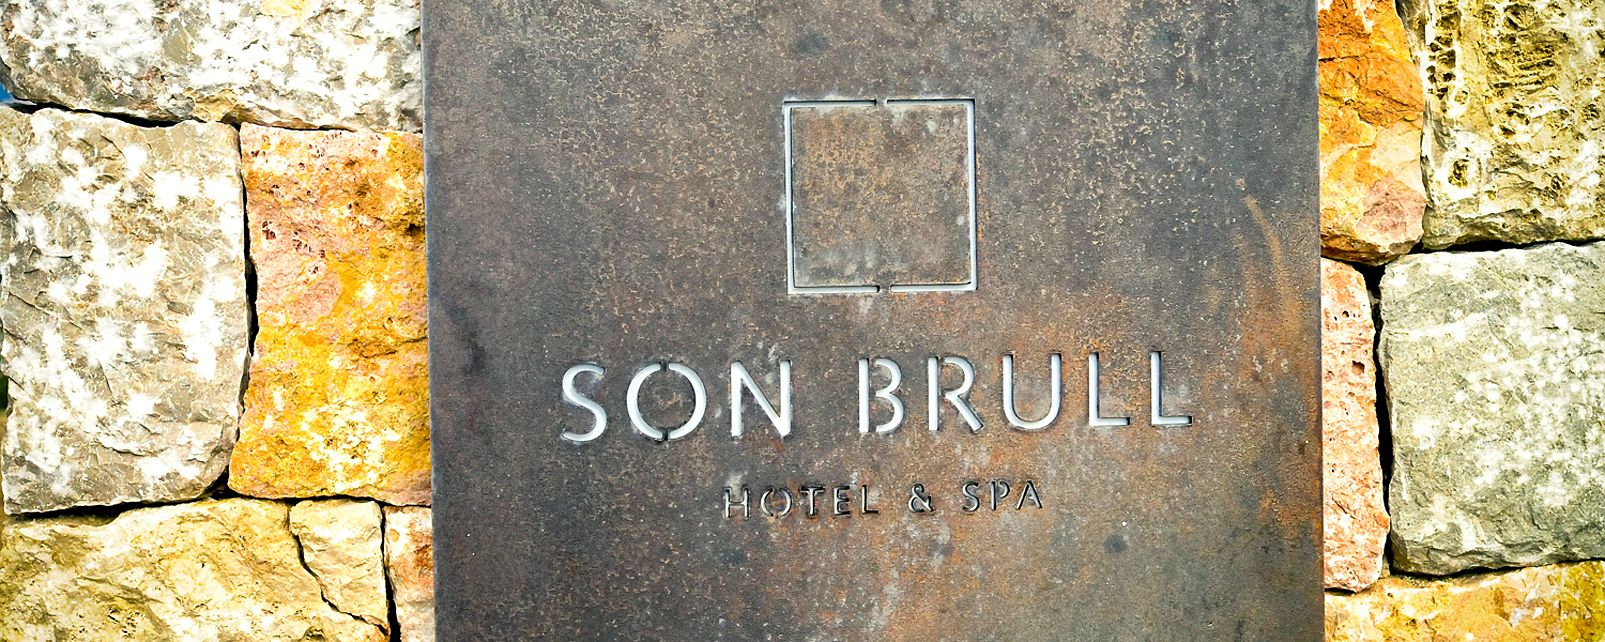 Hôtel Son Brull and Spa